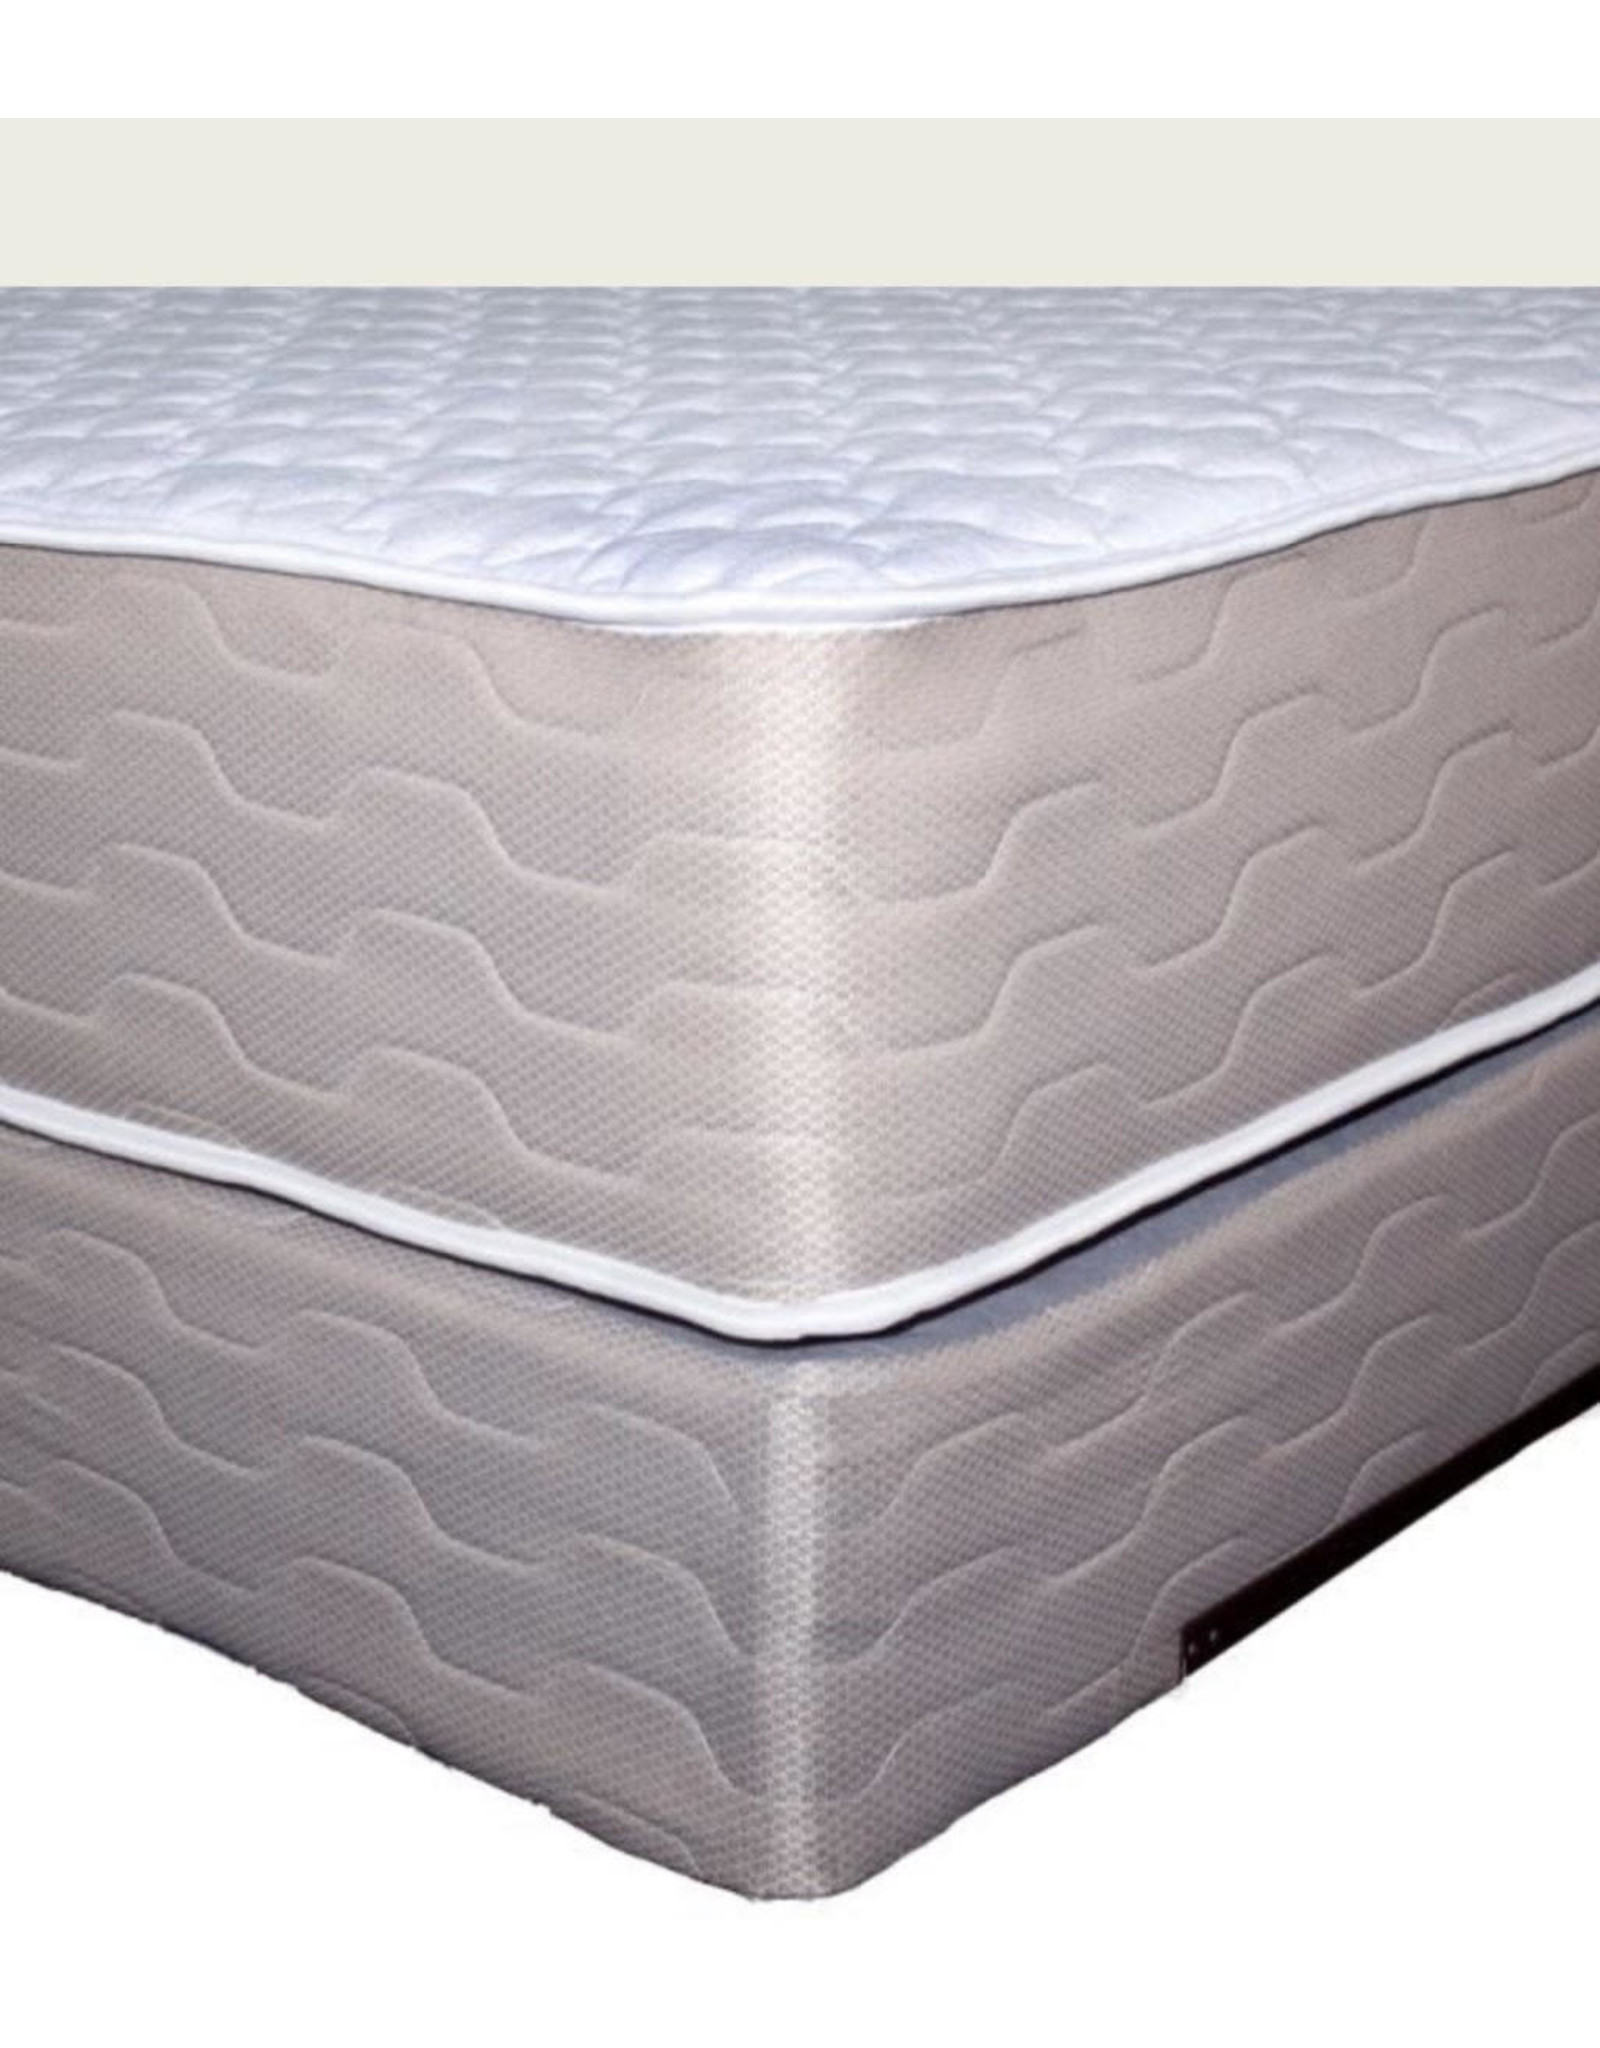 MA- Gold1 Full Quilted Mattress/Box Set (1S)